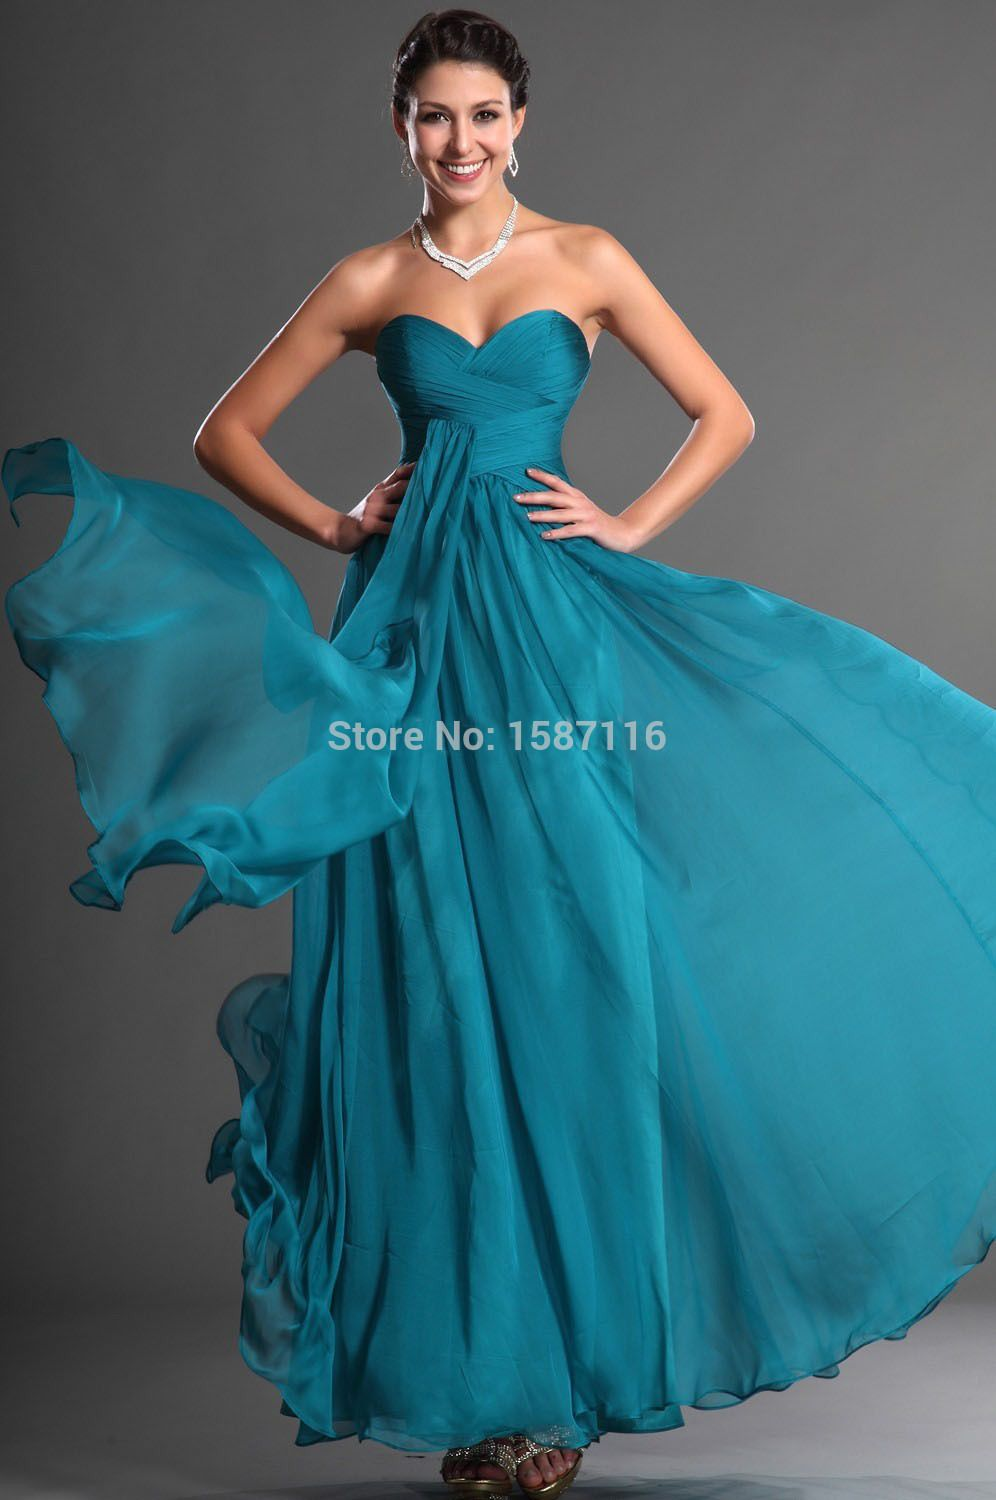 2015 custom high quality bridesmaid dress sweetheart long chiffon 2015 custom high quality bridesmaid dress sweetheart long chiffon turquoise bridesmaid dresses vestido turquesa mint dress ombrellifo Image collections